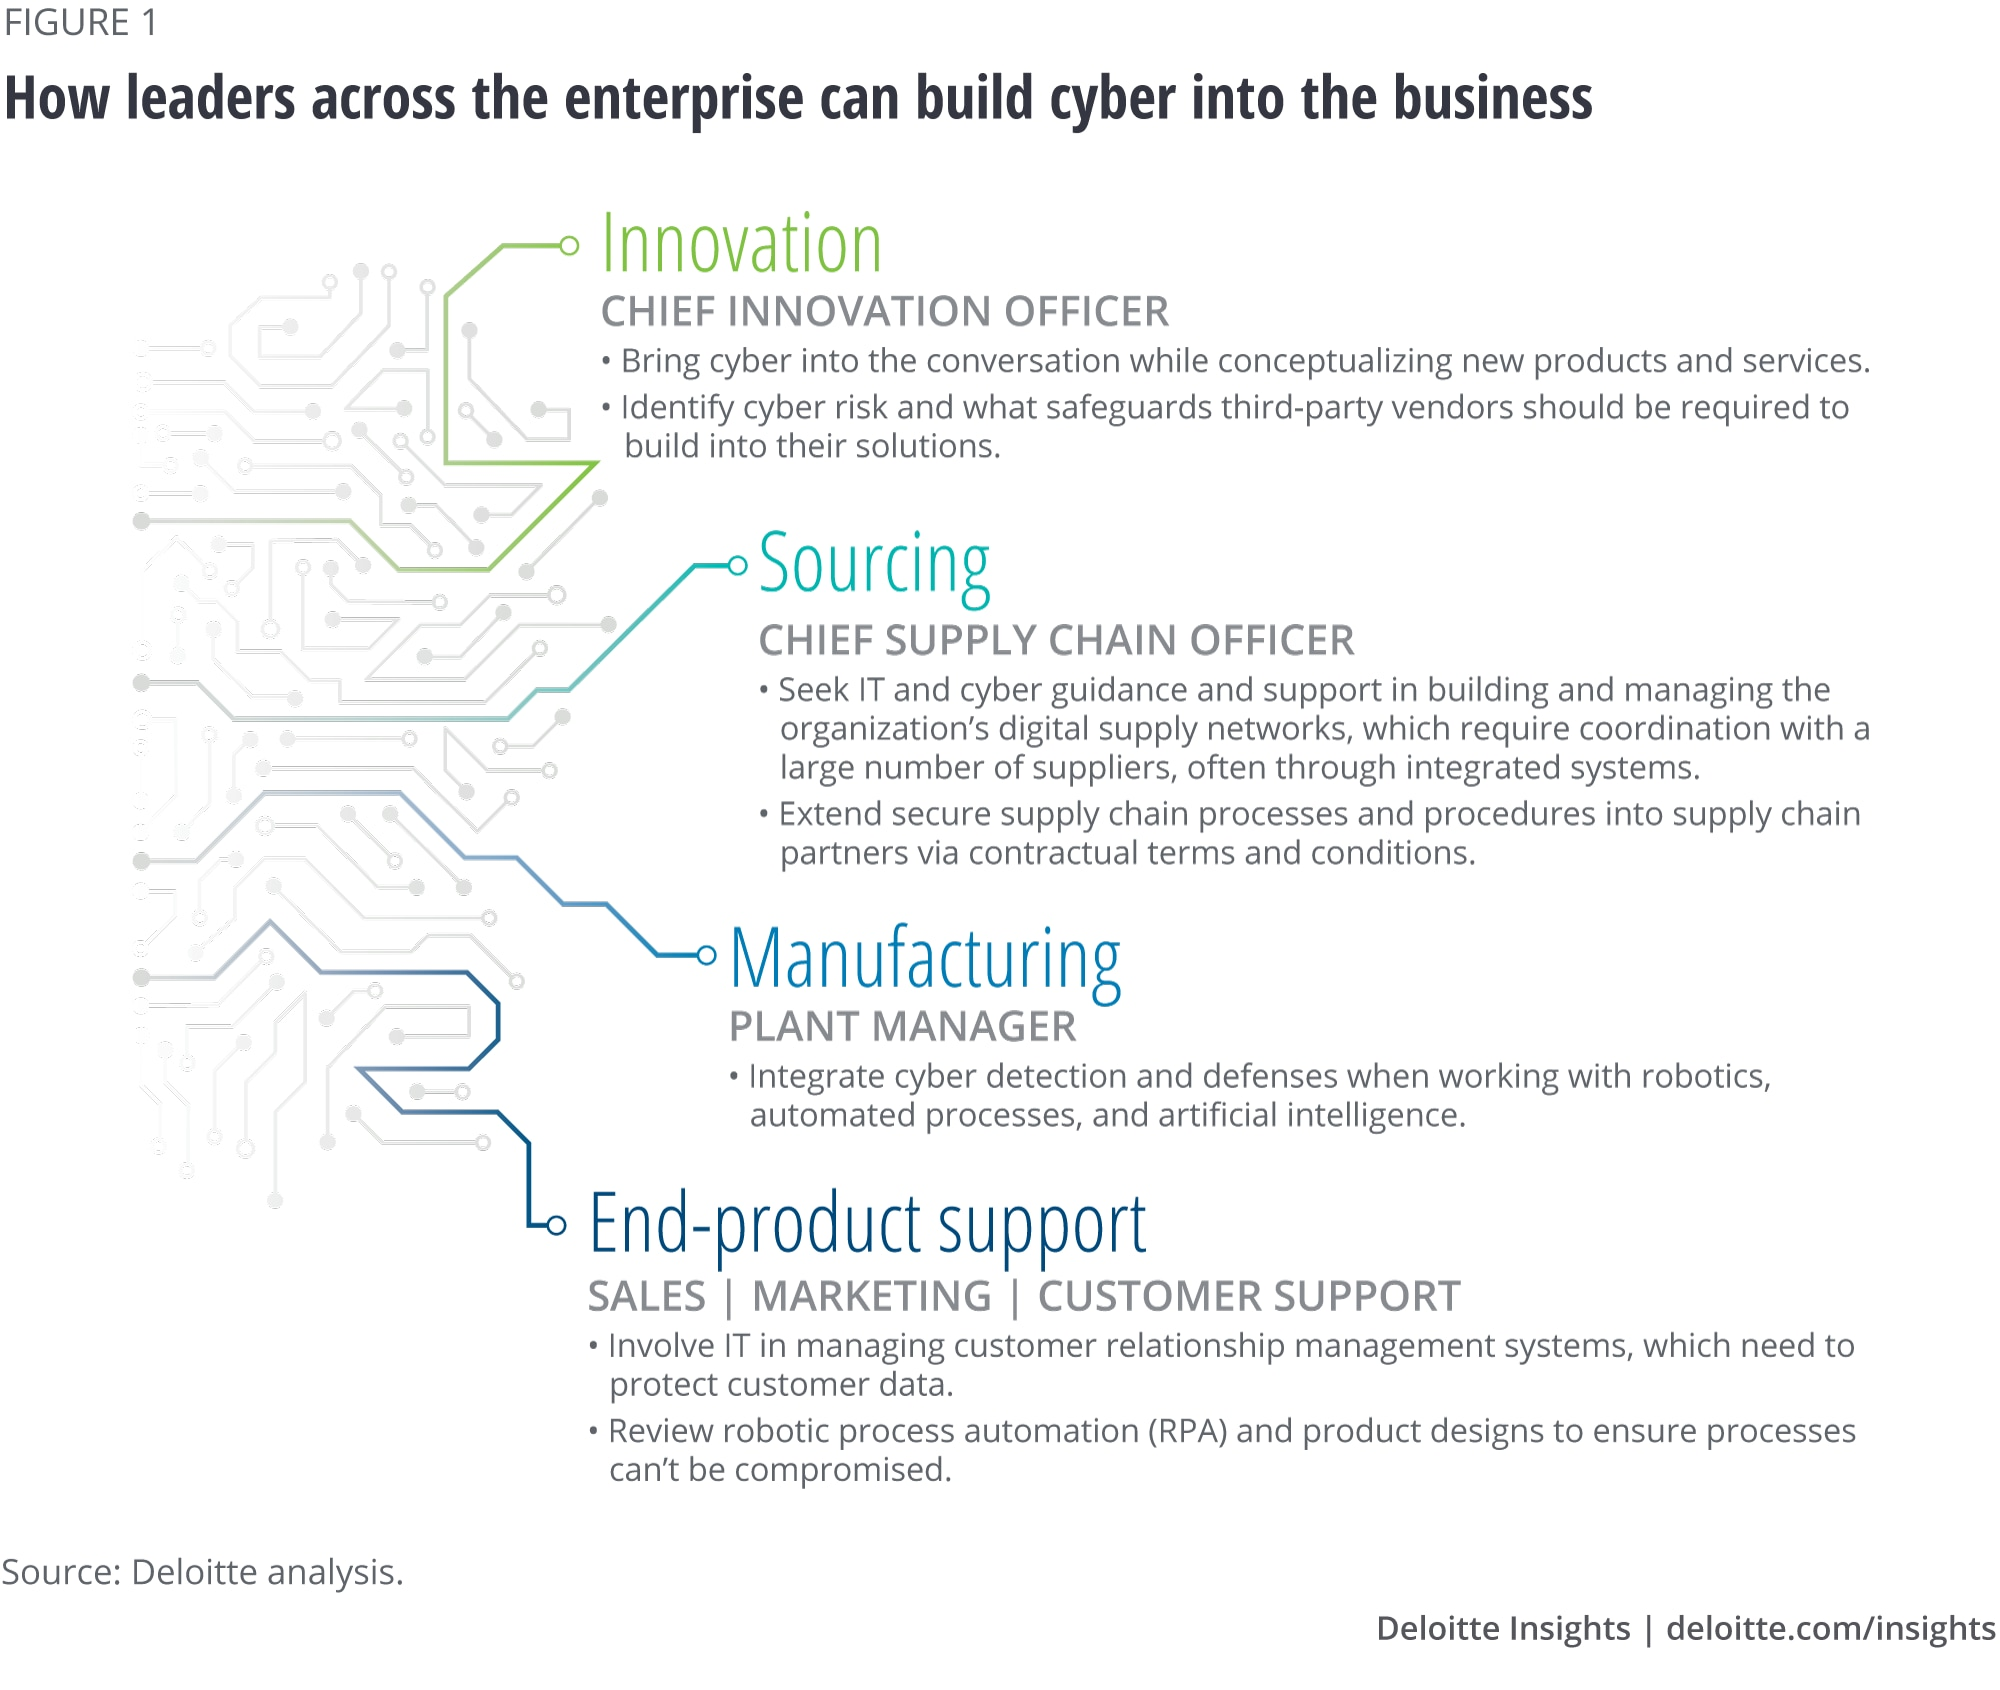 How leaders across the enterprise can build cyber into the business